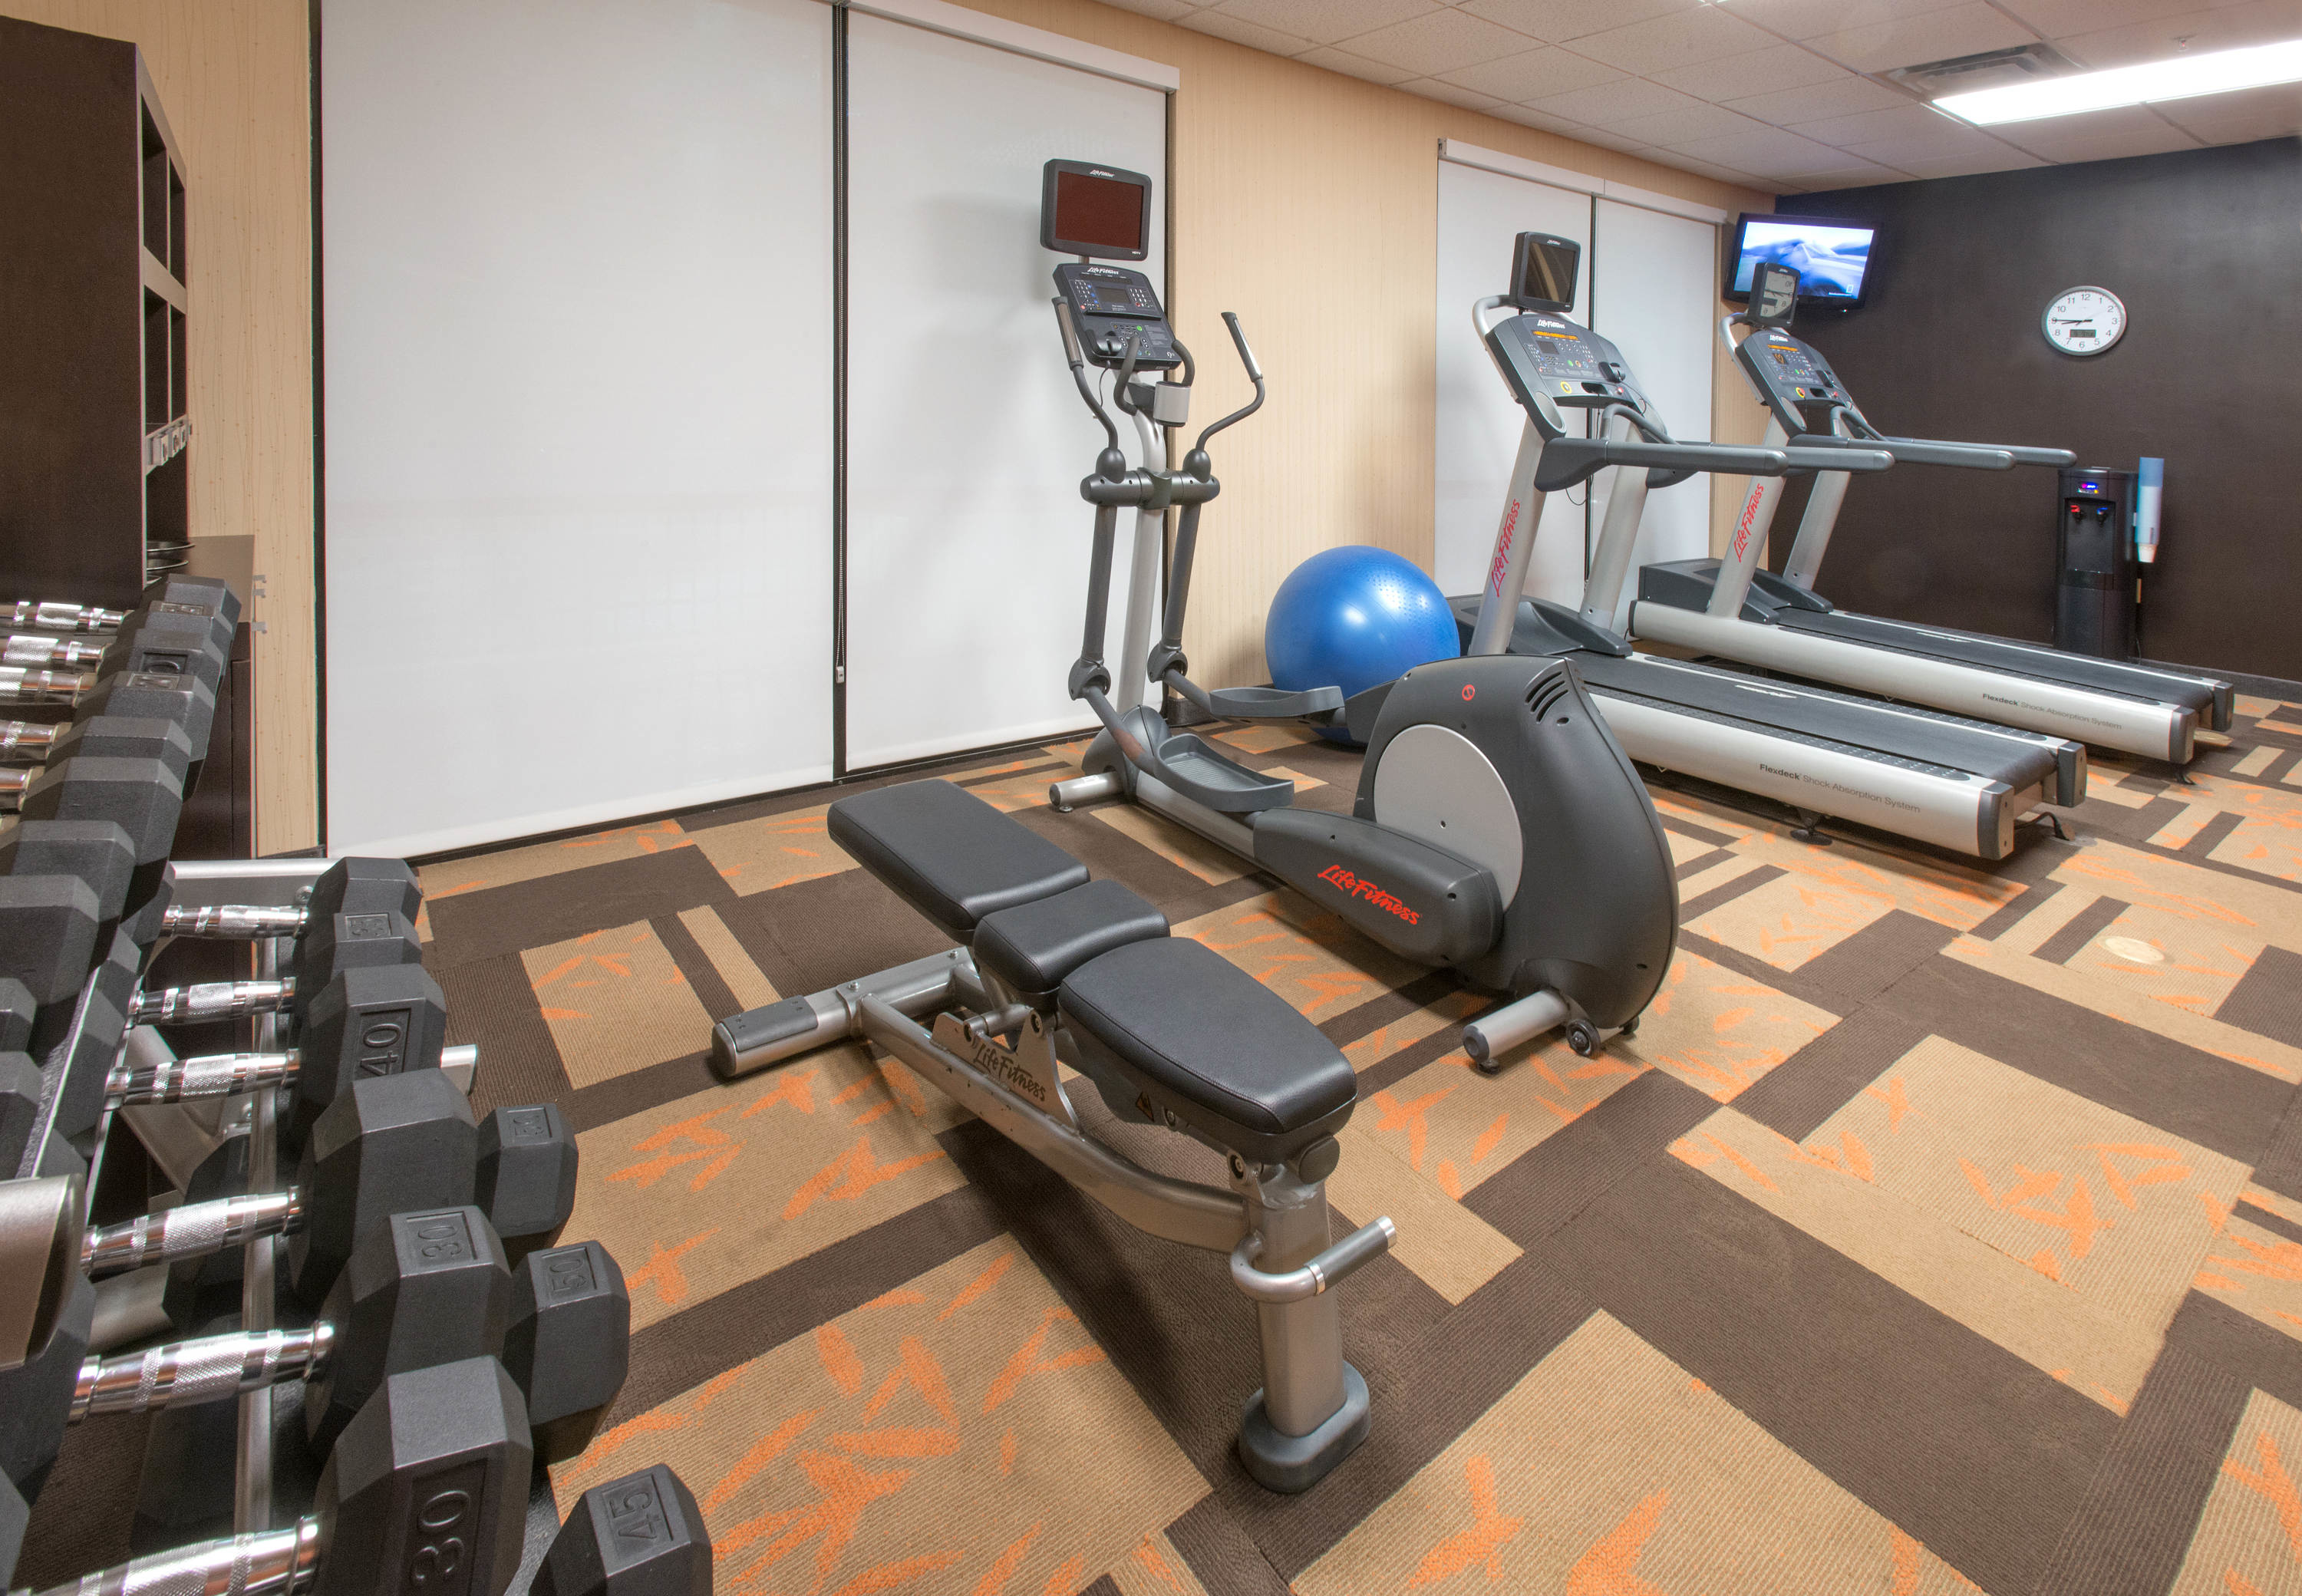 Courtyard by Marriott Albany image 16